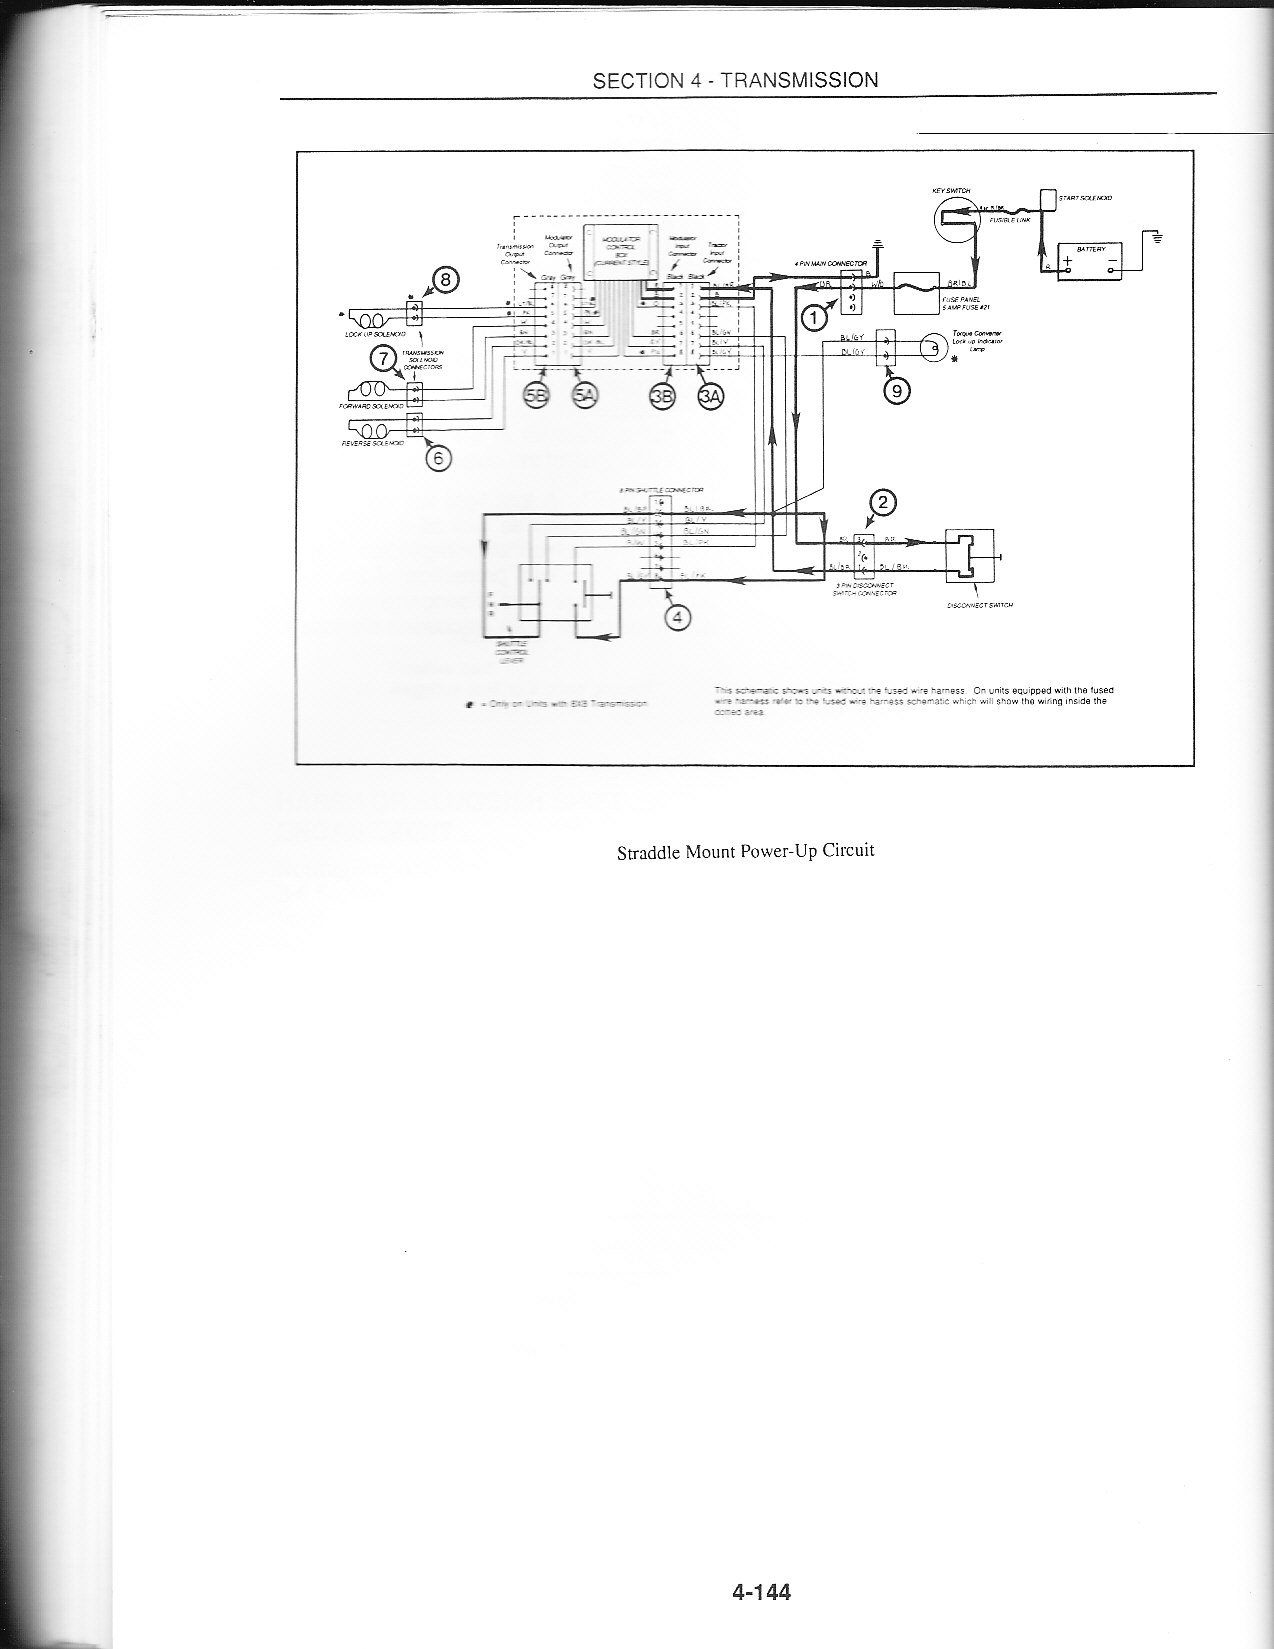 I Have A Ford 445c Loader Tractor With 8 X8 Lectronic Shuttle Shift C8 Transmission Wiring Diagram Here Is The Info Promised Hope It Helps You If Need More Technical From Book Just Ask Thanks Dan